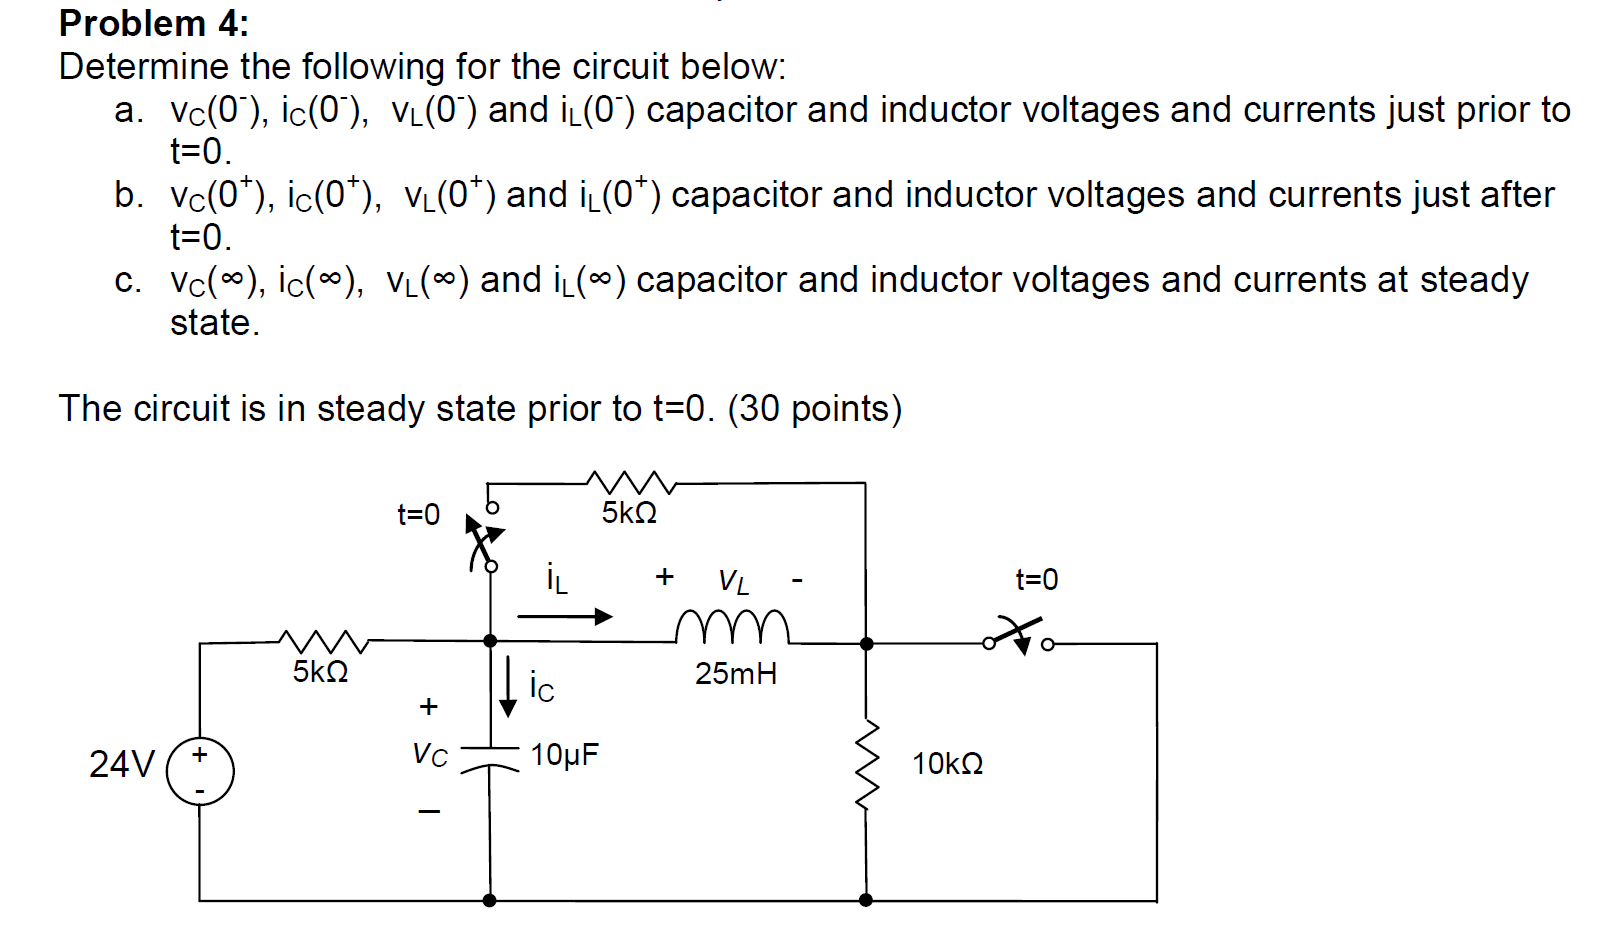 Determine the following for the circuit below: vc